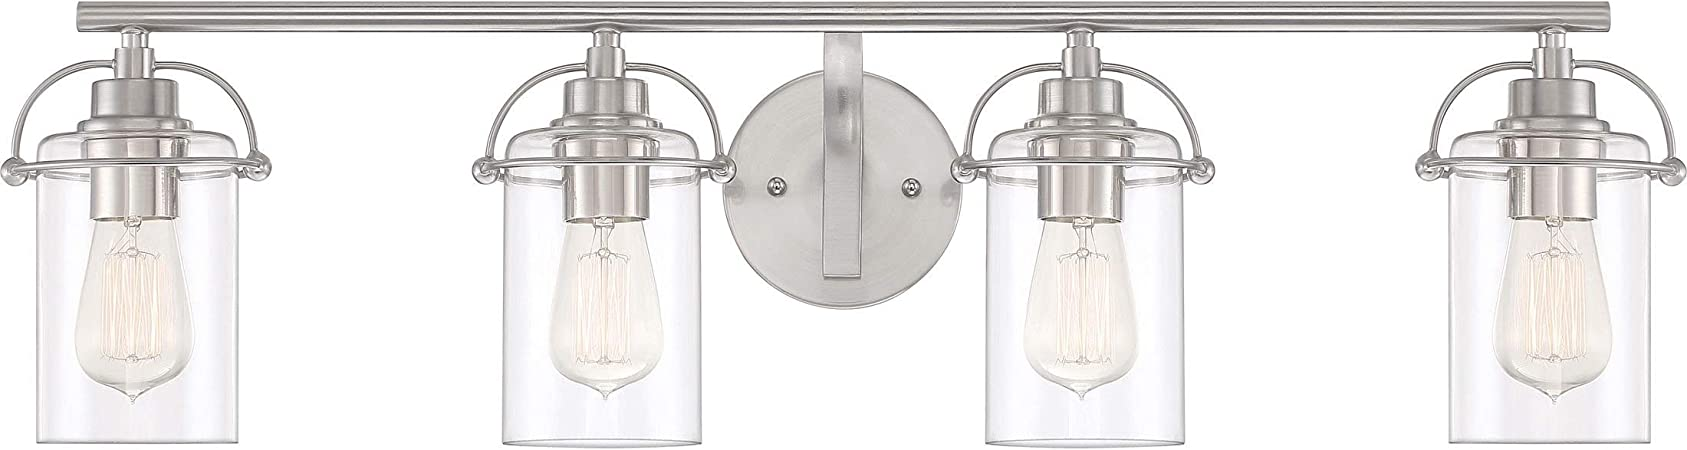 Quoizel Emr8604bn Emerson Clear Glass Vanity Wall Lighting 4 Light 400 Watts Brushed Nickel 9 H X 34 W Home Improvement